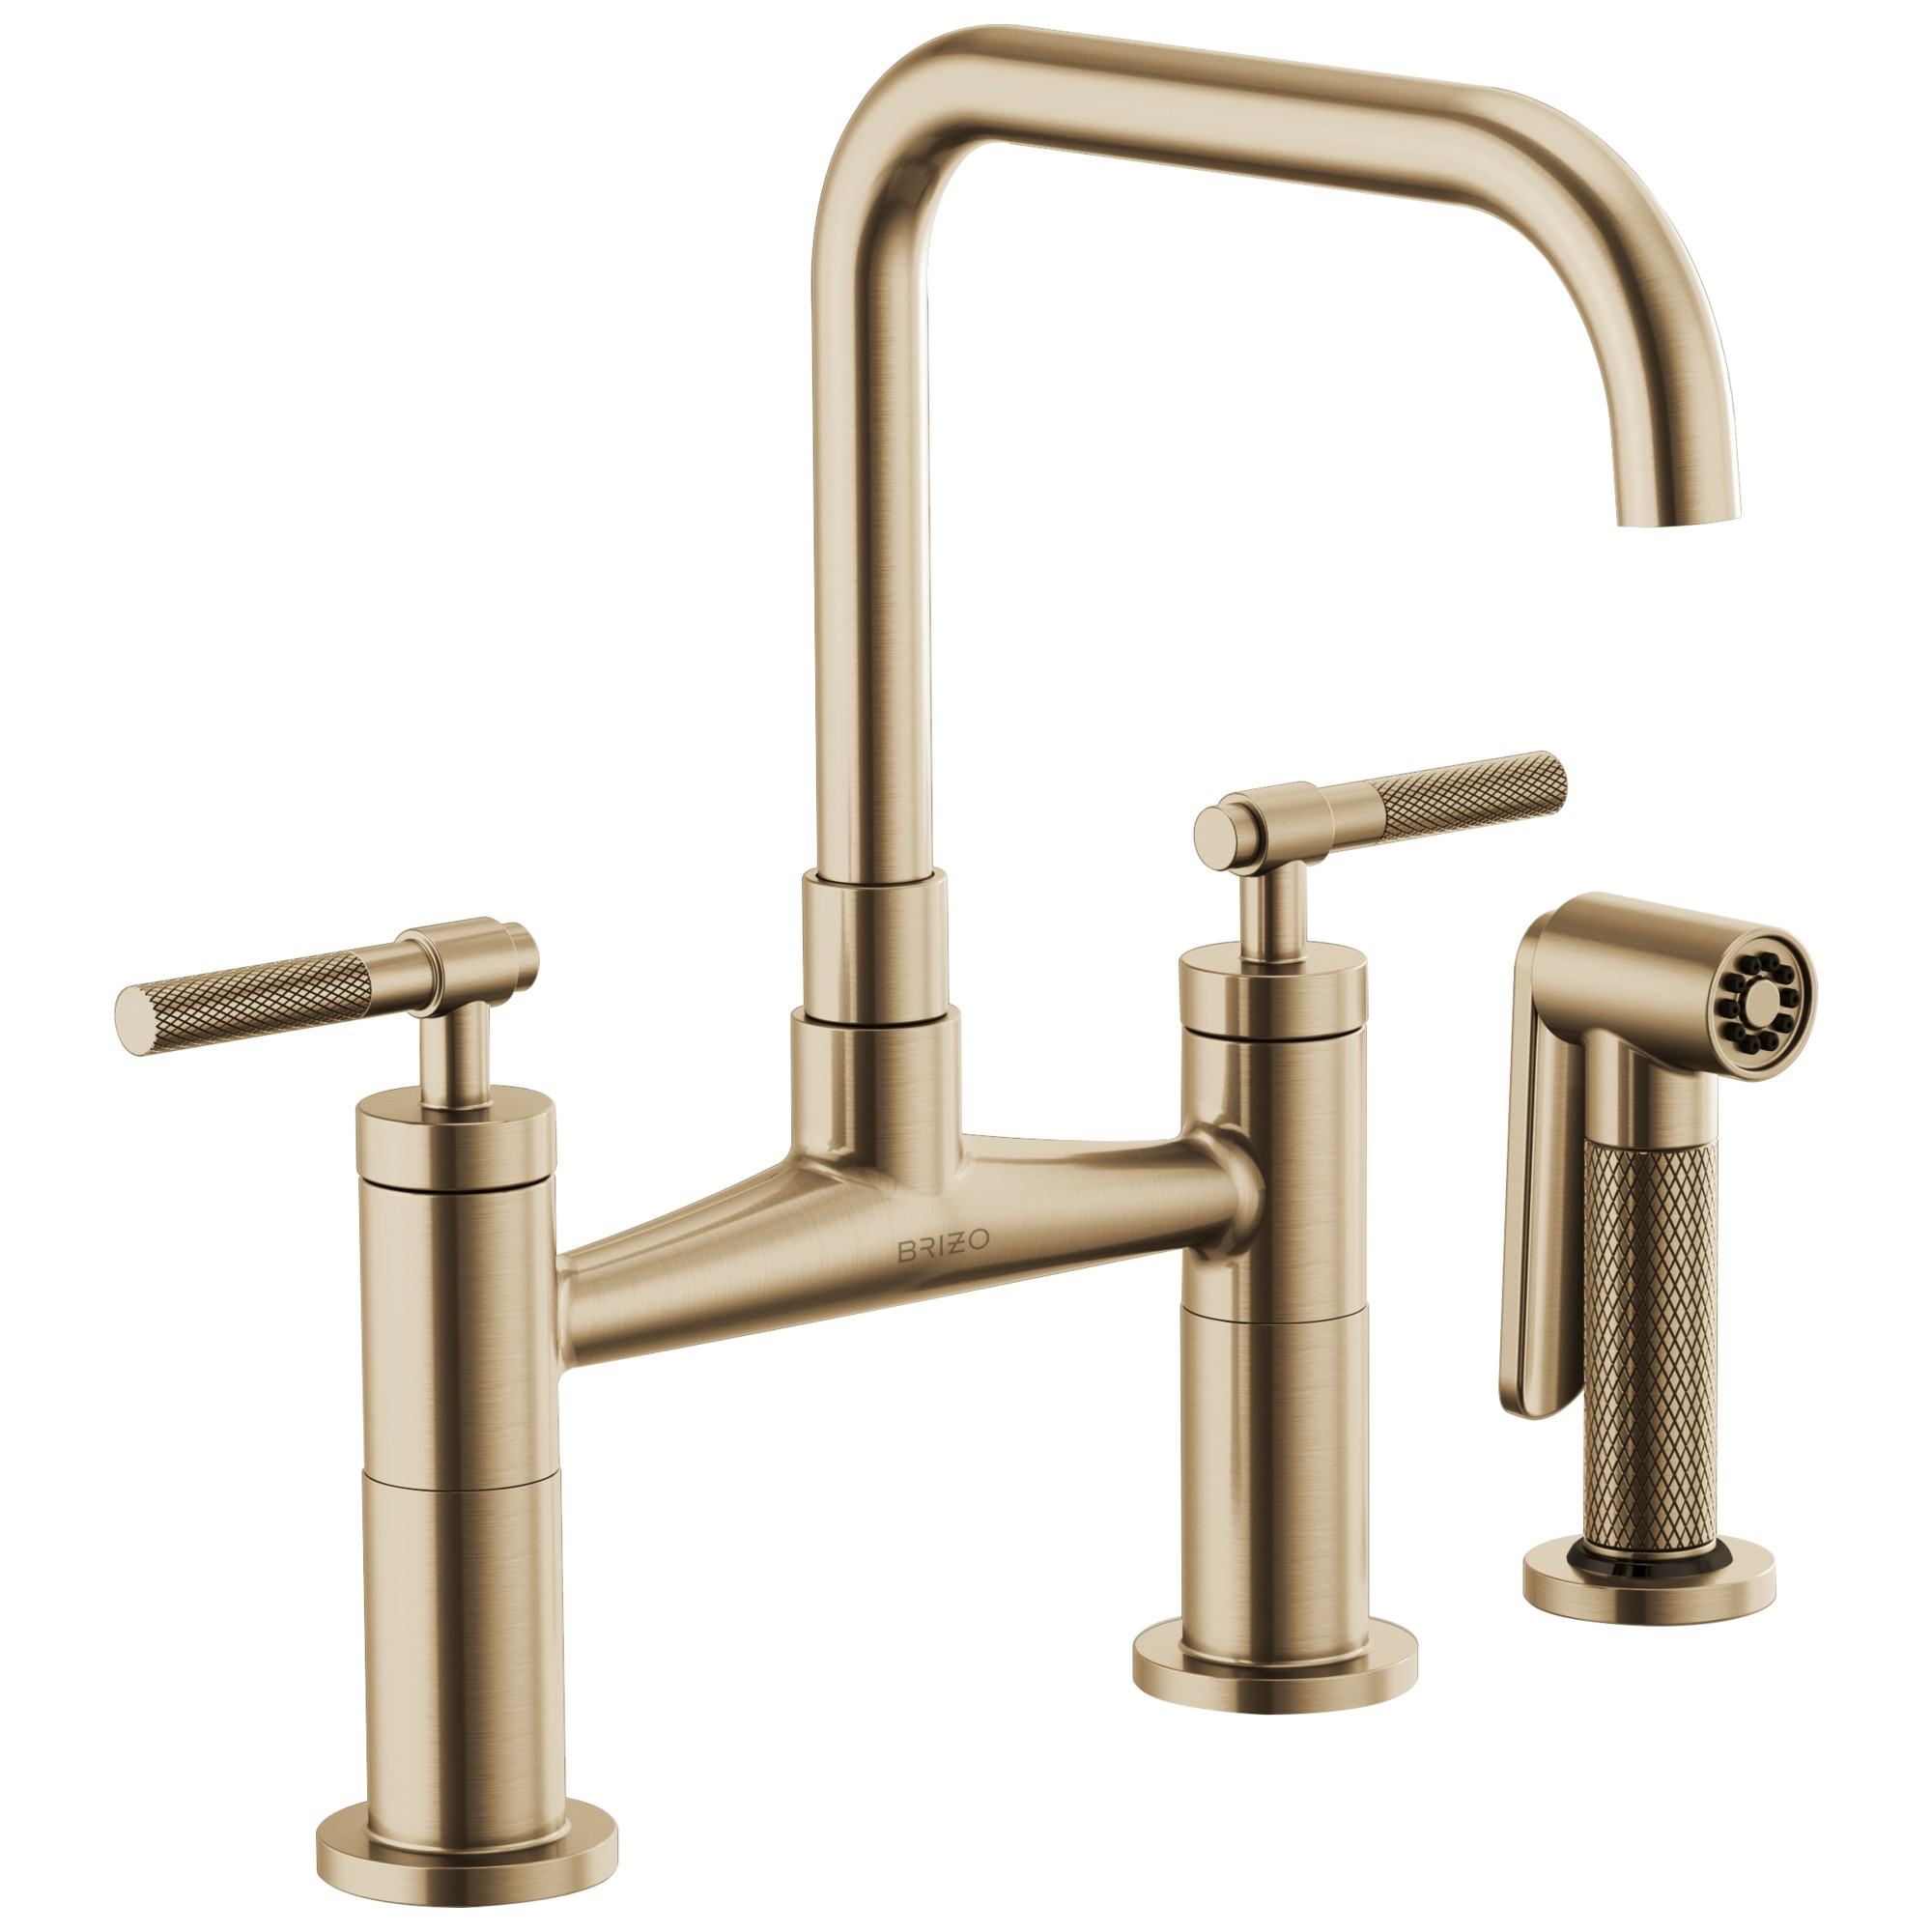 Brizo 62553LF-GL Litze Bridge Faucet with Square Spout and Knurled Handle - Luxe Gold